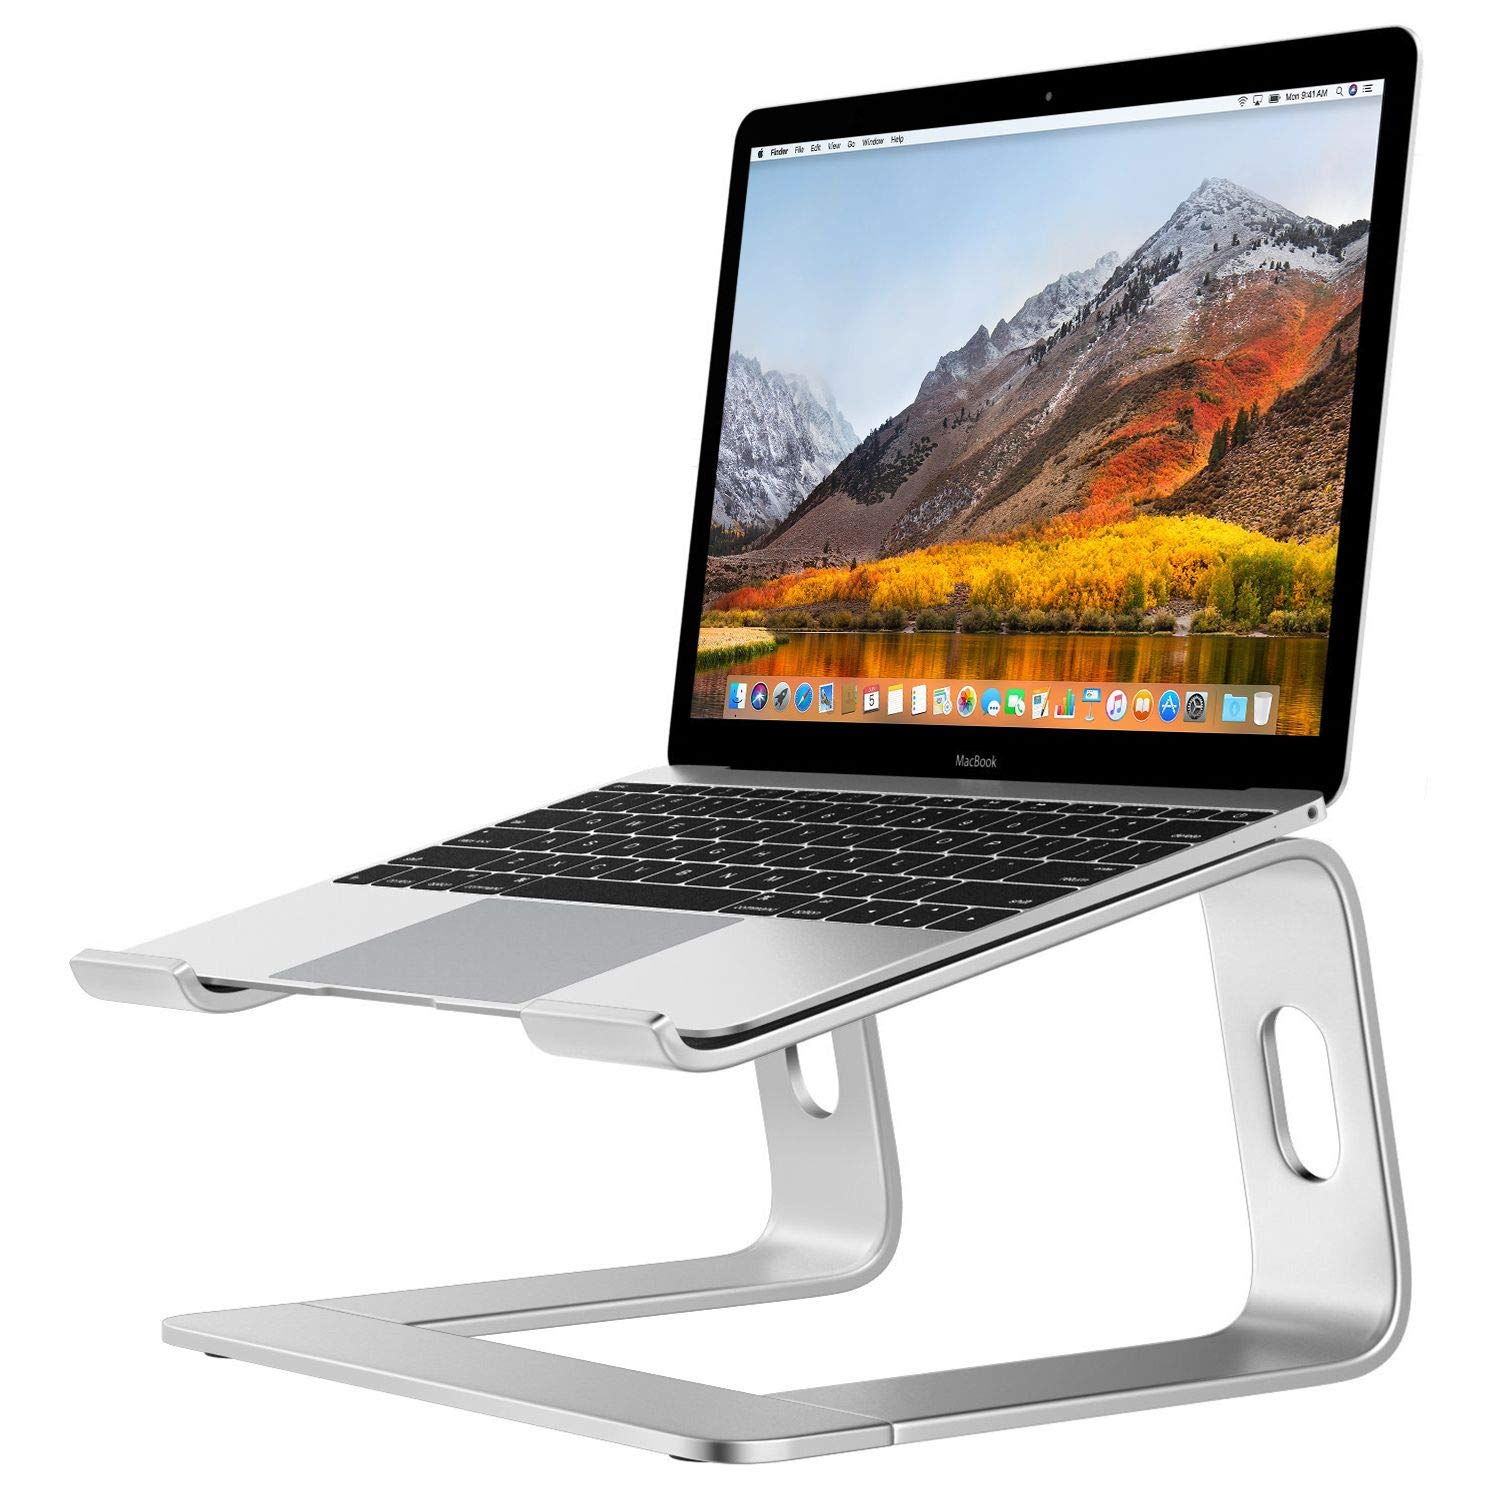 Desire2 Laptop Stand, View Ergonomic Aluminum Laptop Computer Stand, Detachable Laptop Riser Notebook Holder Stand Compatible with MacBook Air Pro, Dell XPS, HP, Lenovo More 10-15.6'' Laptops